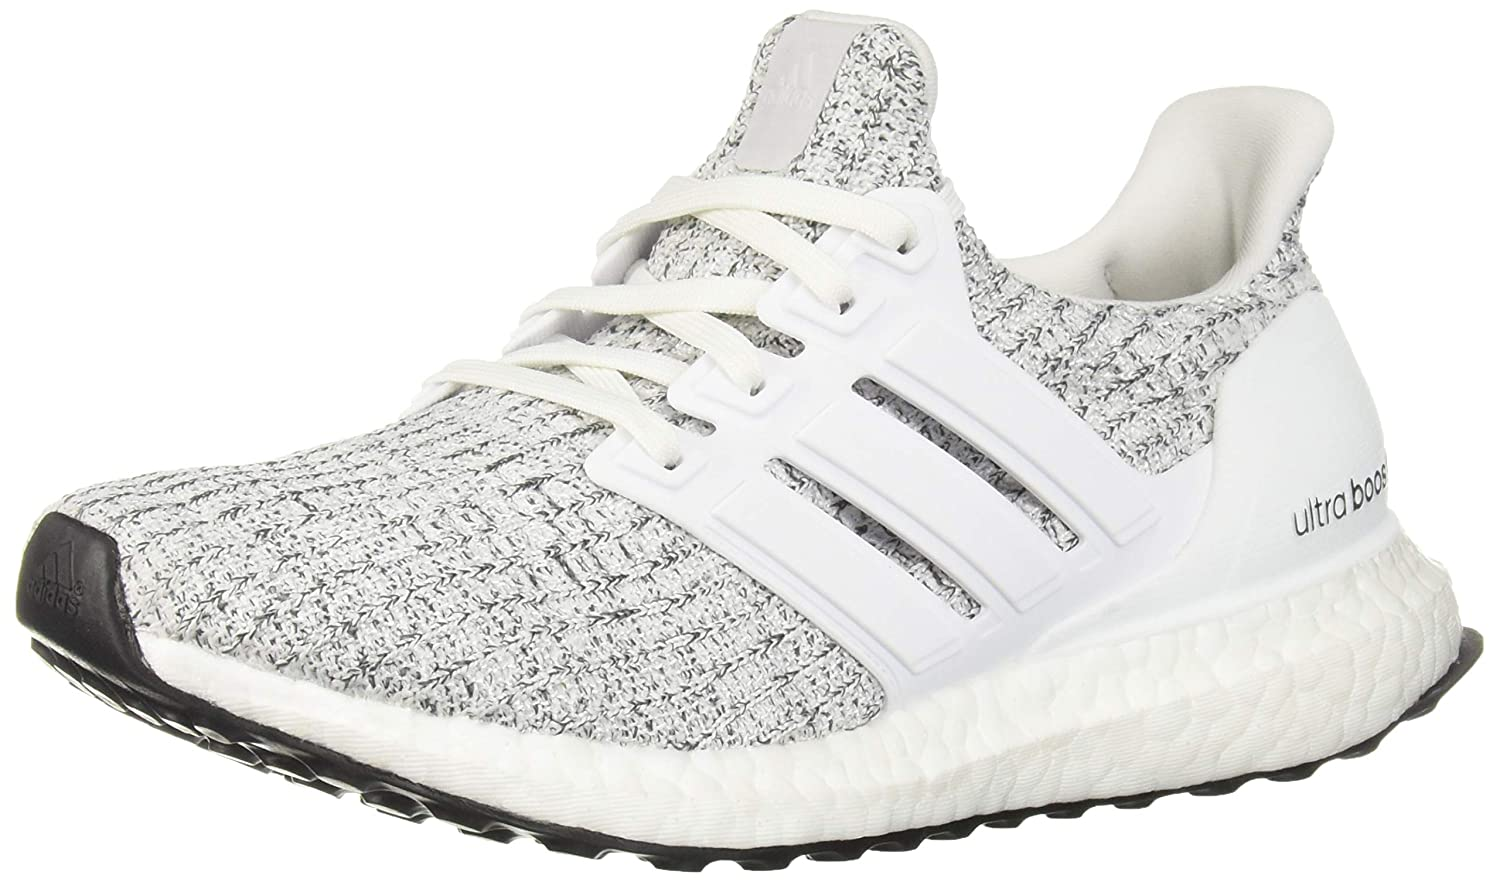 Footwear White Footwear White Non Dyed adidas Women's UltraBOOST Running shoes